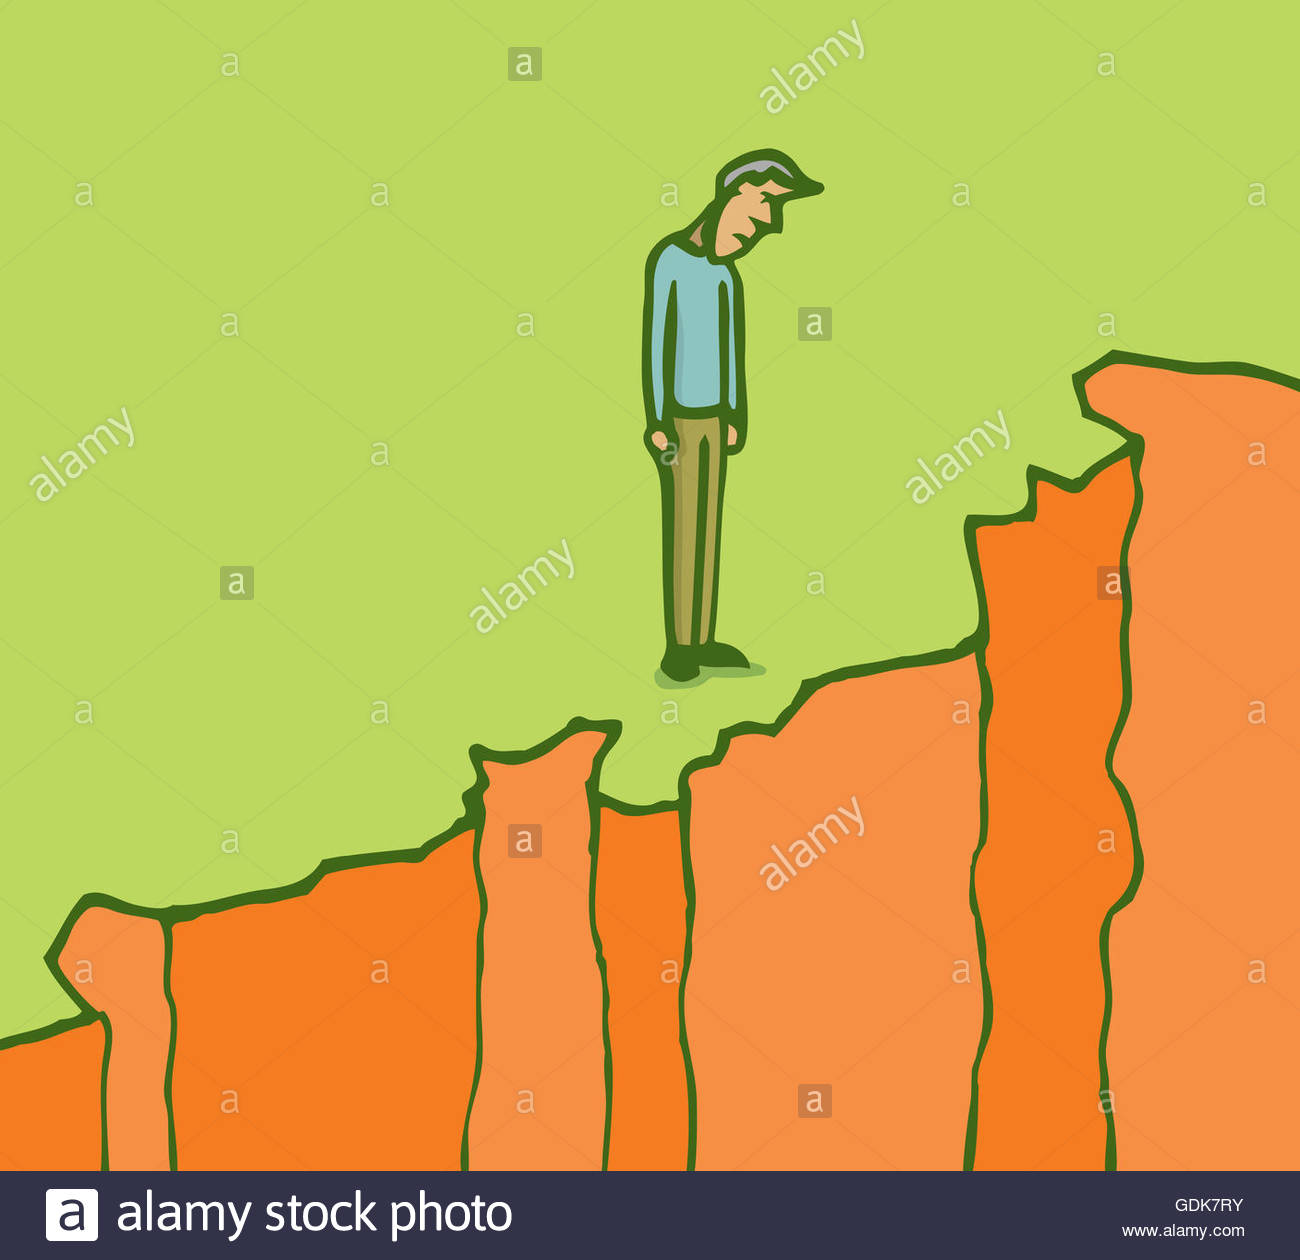 1300x1260 Cartoon Illustration Pensive Man Looking Down On The Edge